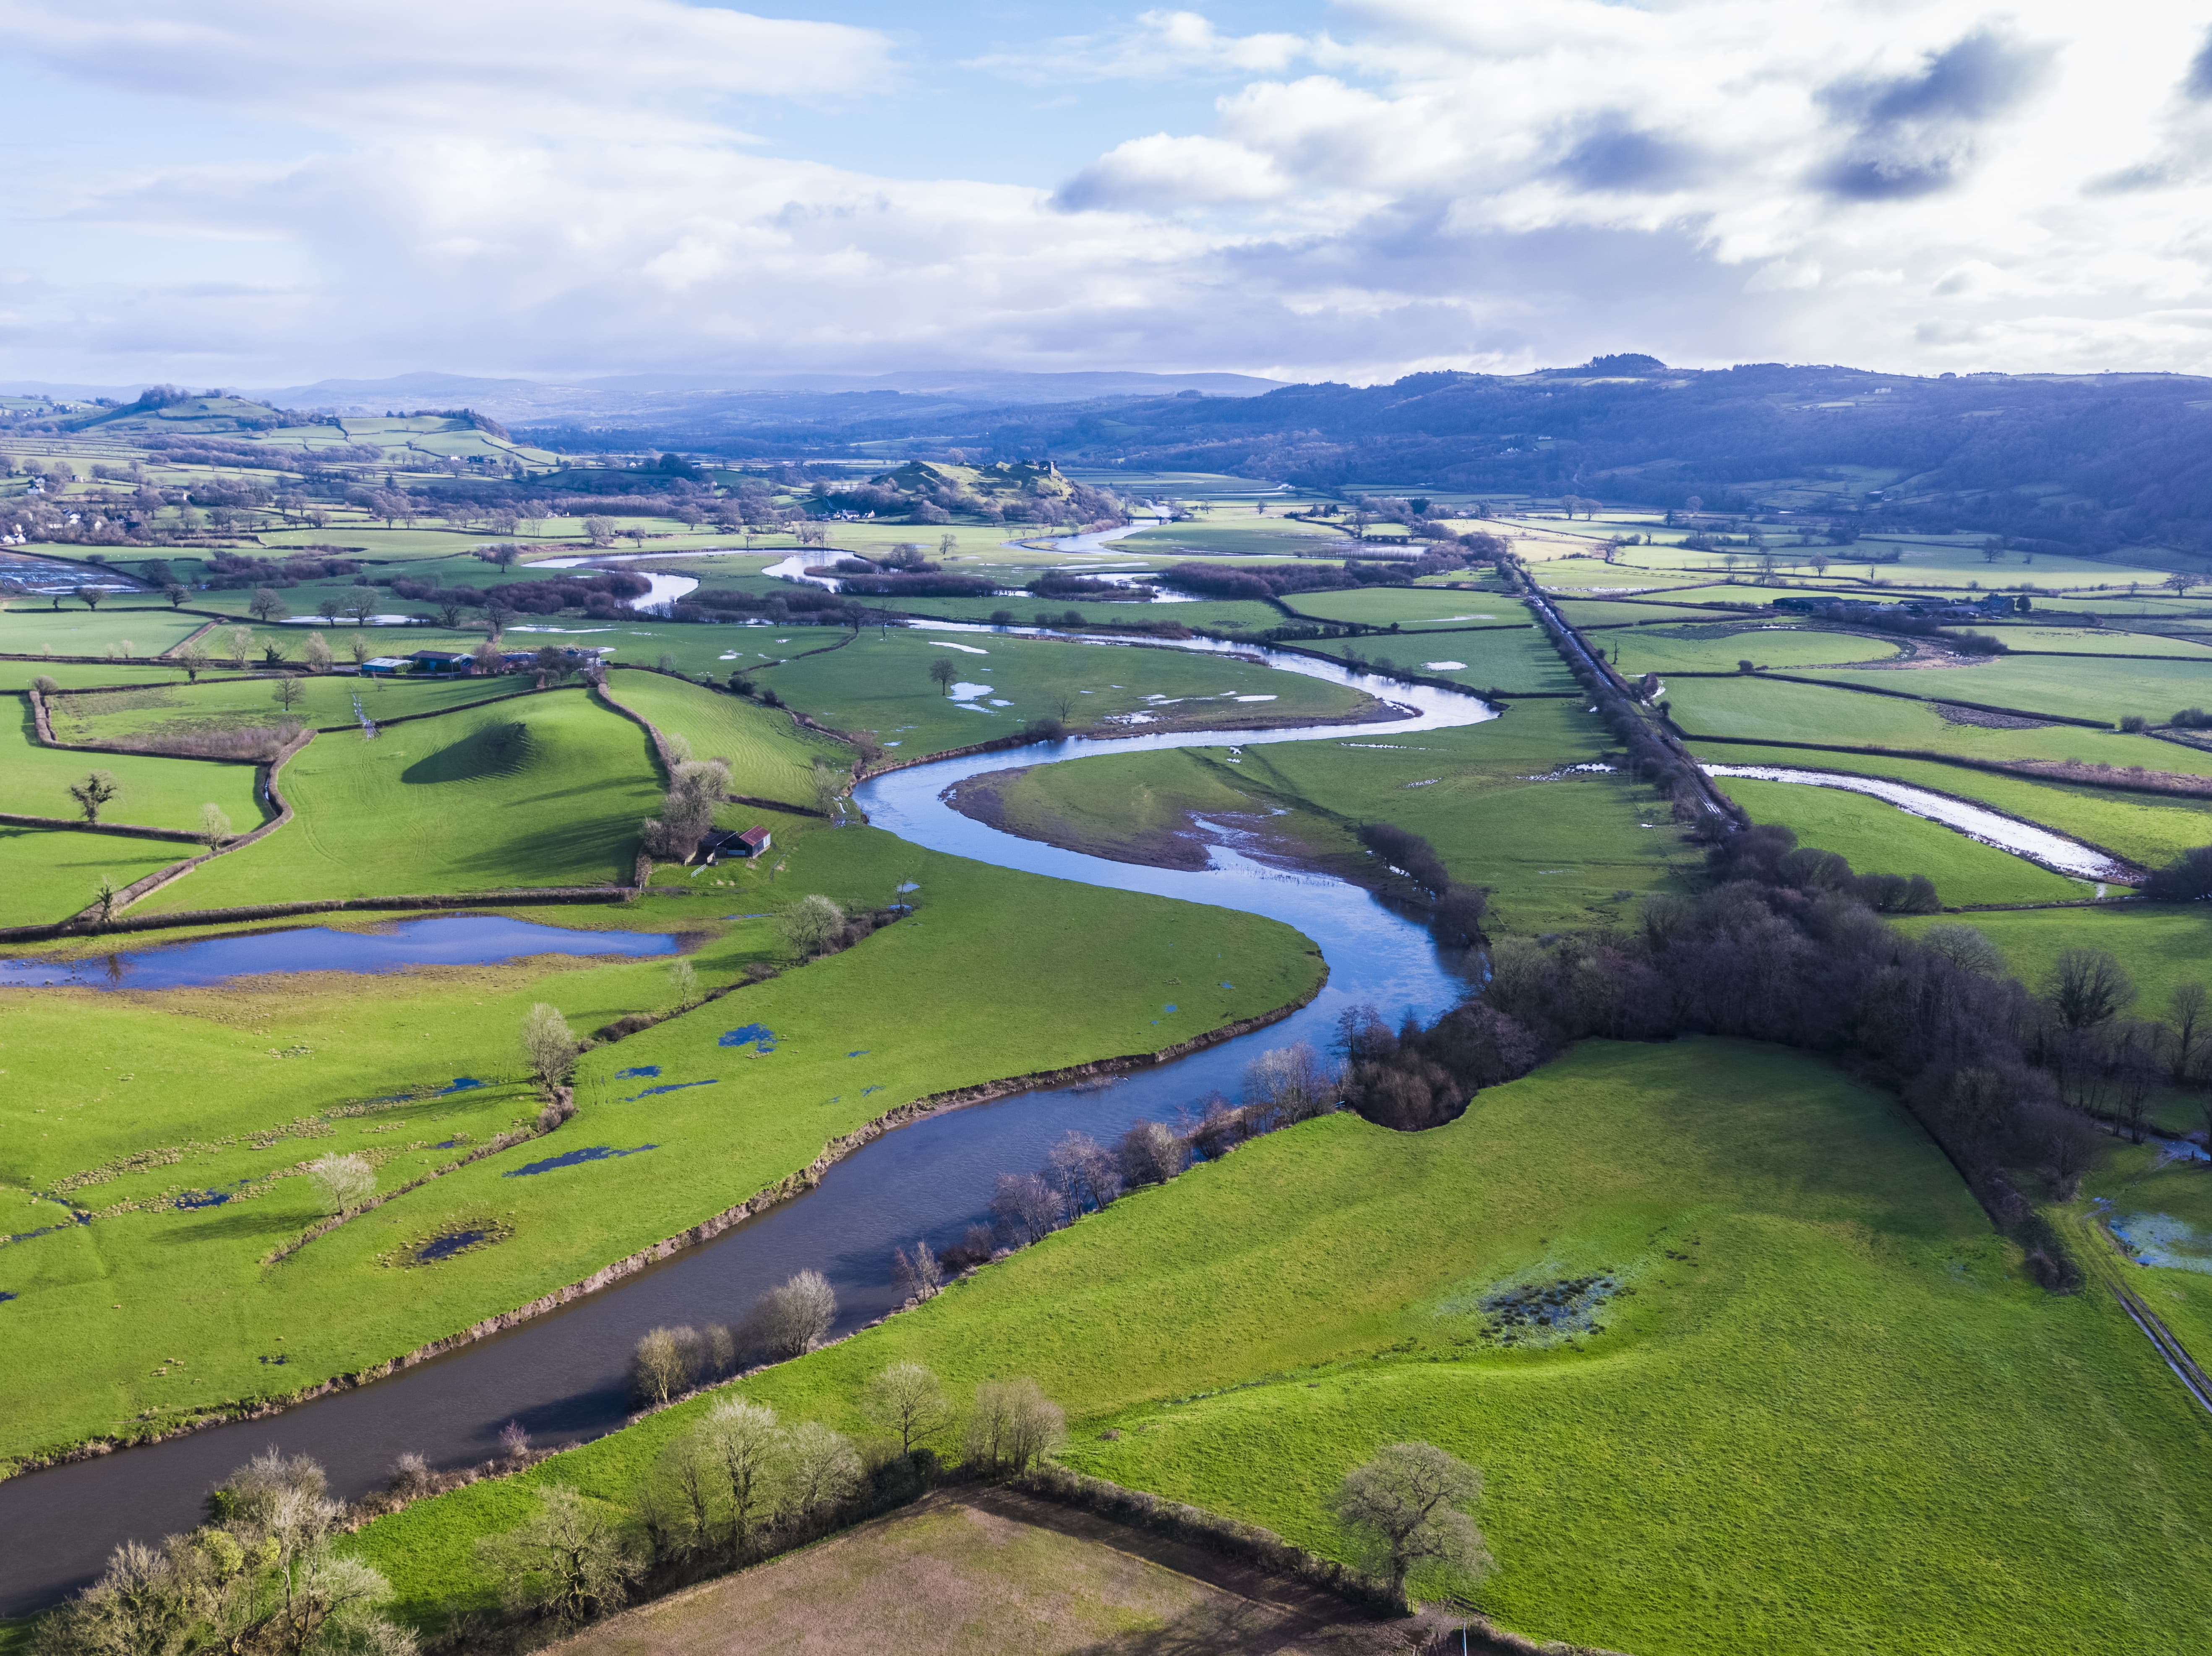 Towy Valley